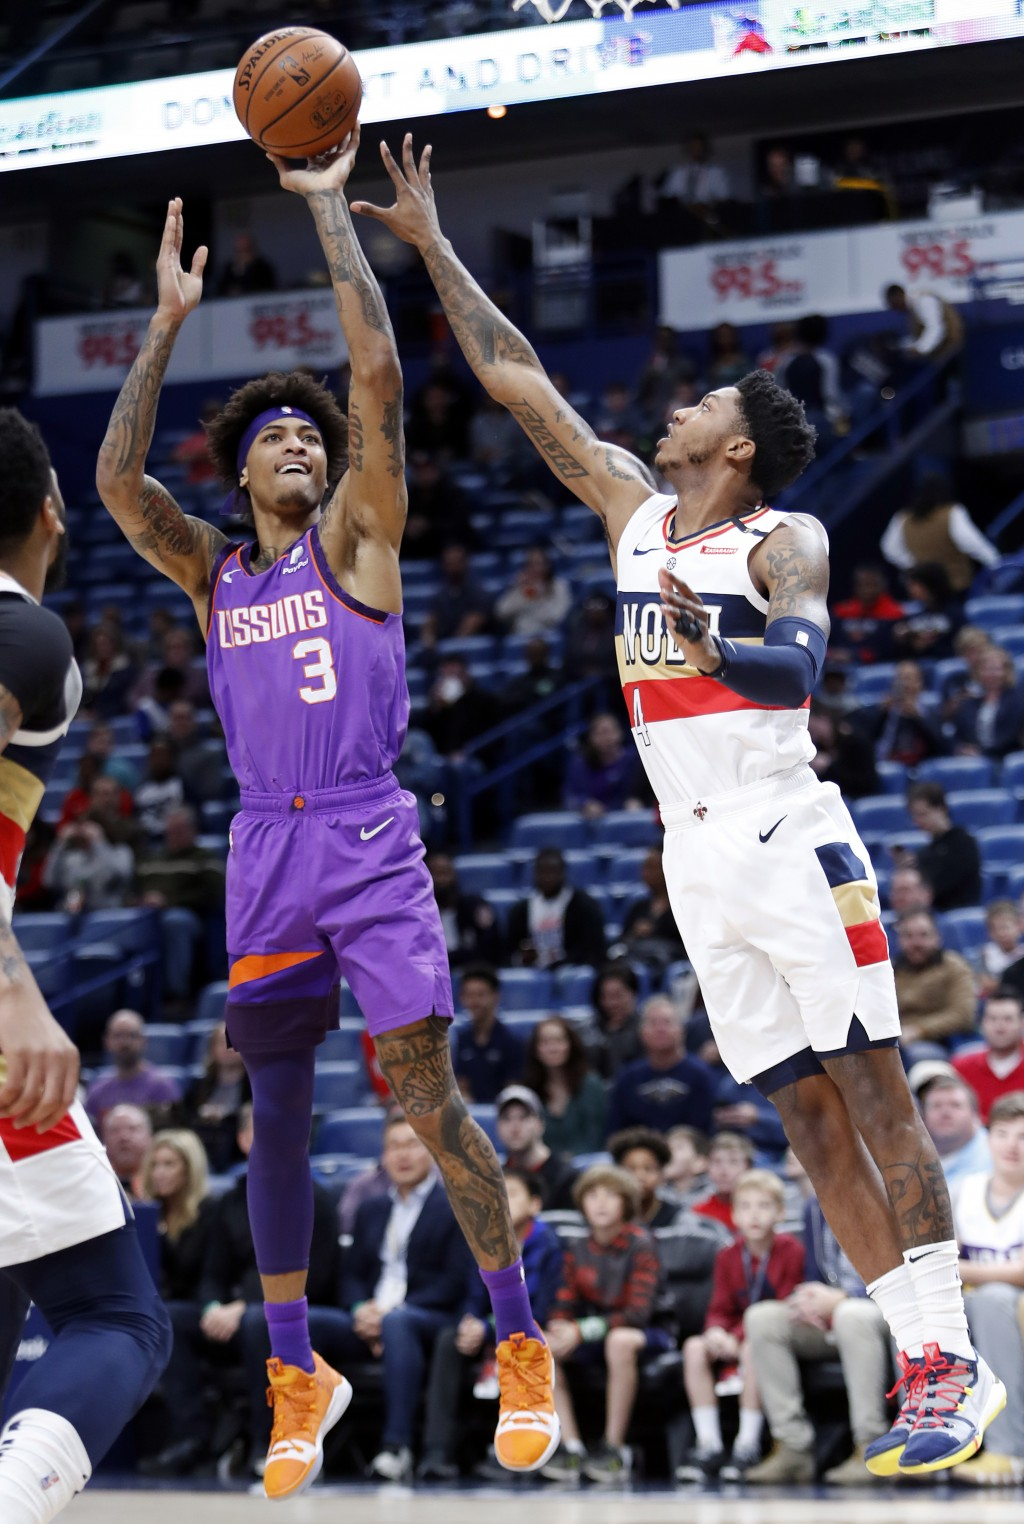 Phoenix Suns forward Kelly Oubre Jr. (3) shoots over New Orleans Pelicans guard Elfrid Payton (4) during the first half of an NBA basketball game in N